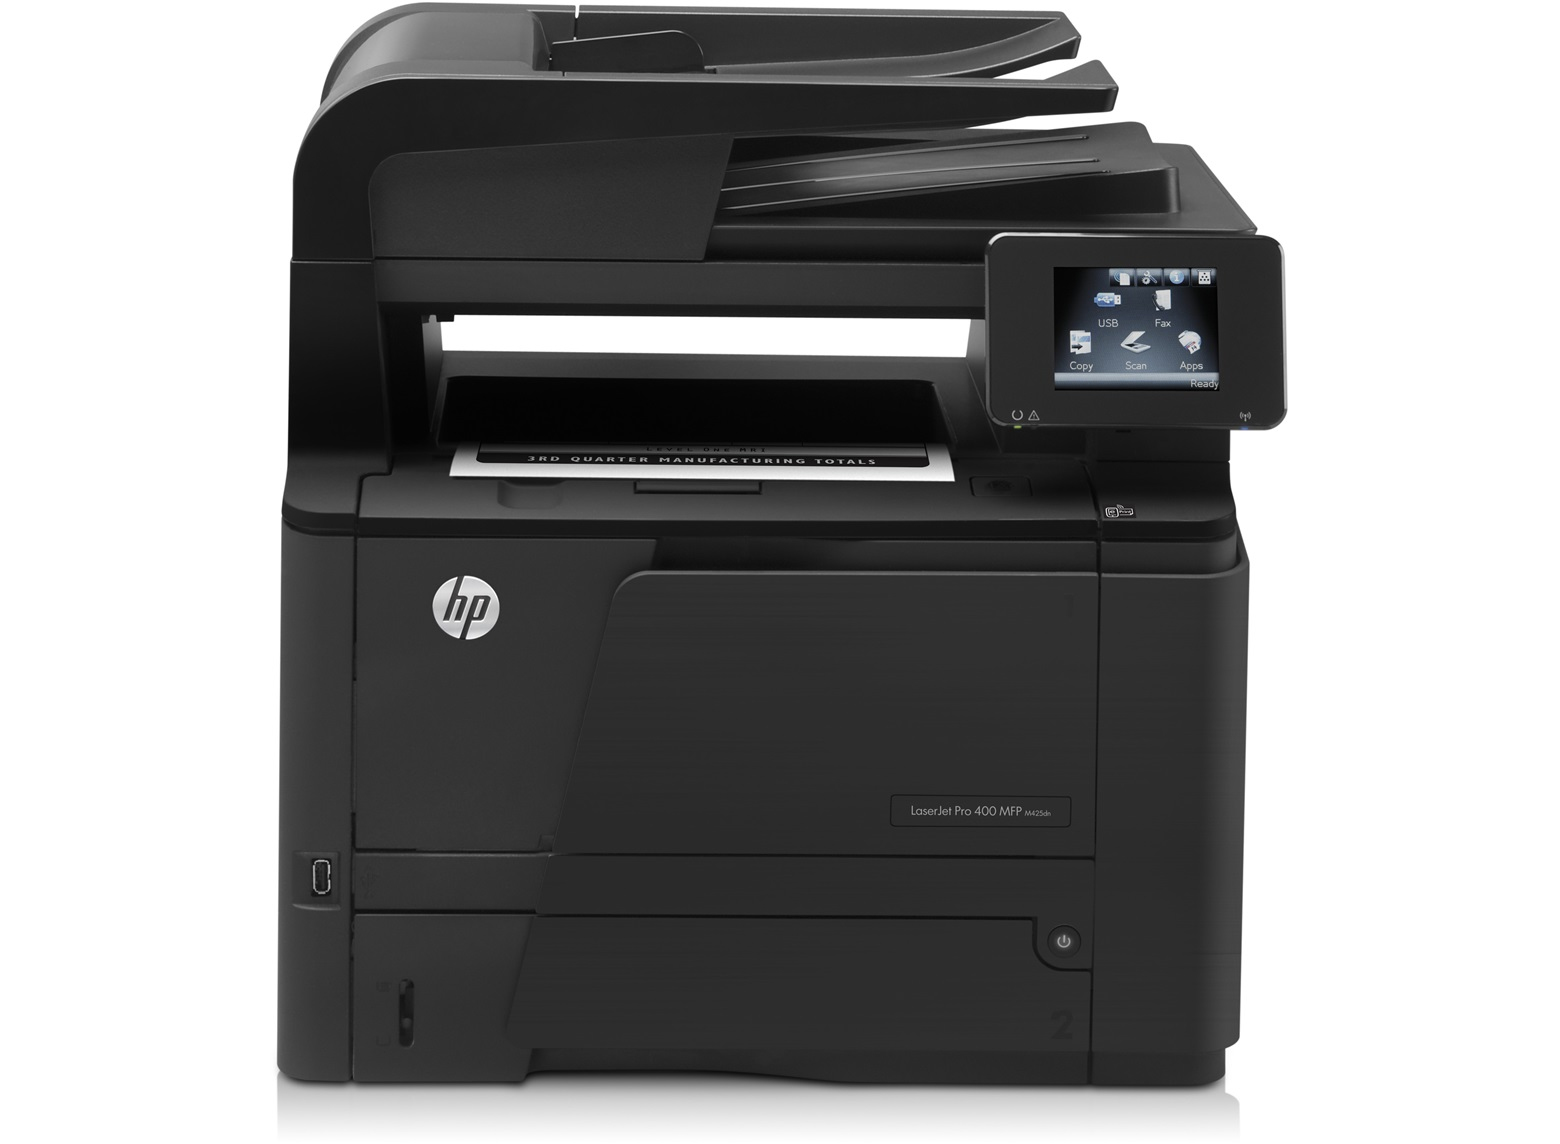 CF286A HP LaserJet Pro 400 M425dn M425 MFP USB Mono Duplex Network USB Printer - Refurbished with 3 months RTB warranty